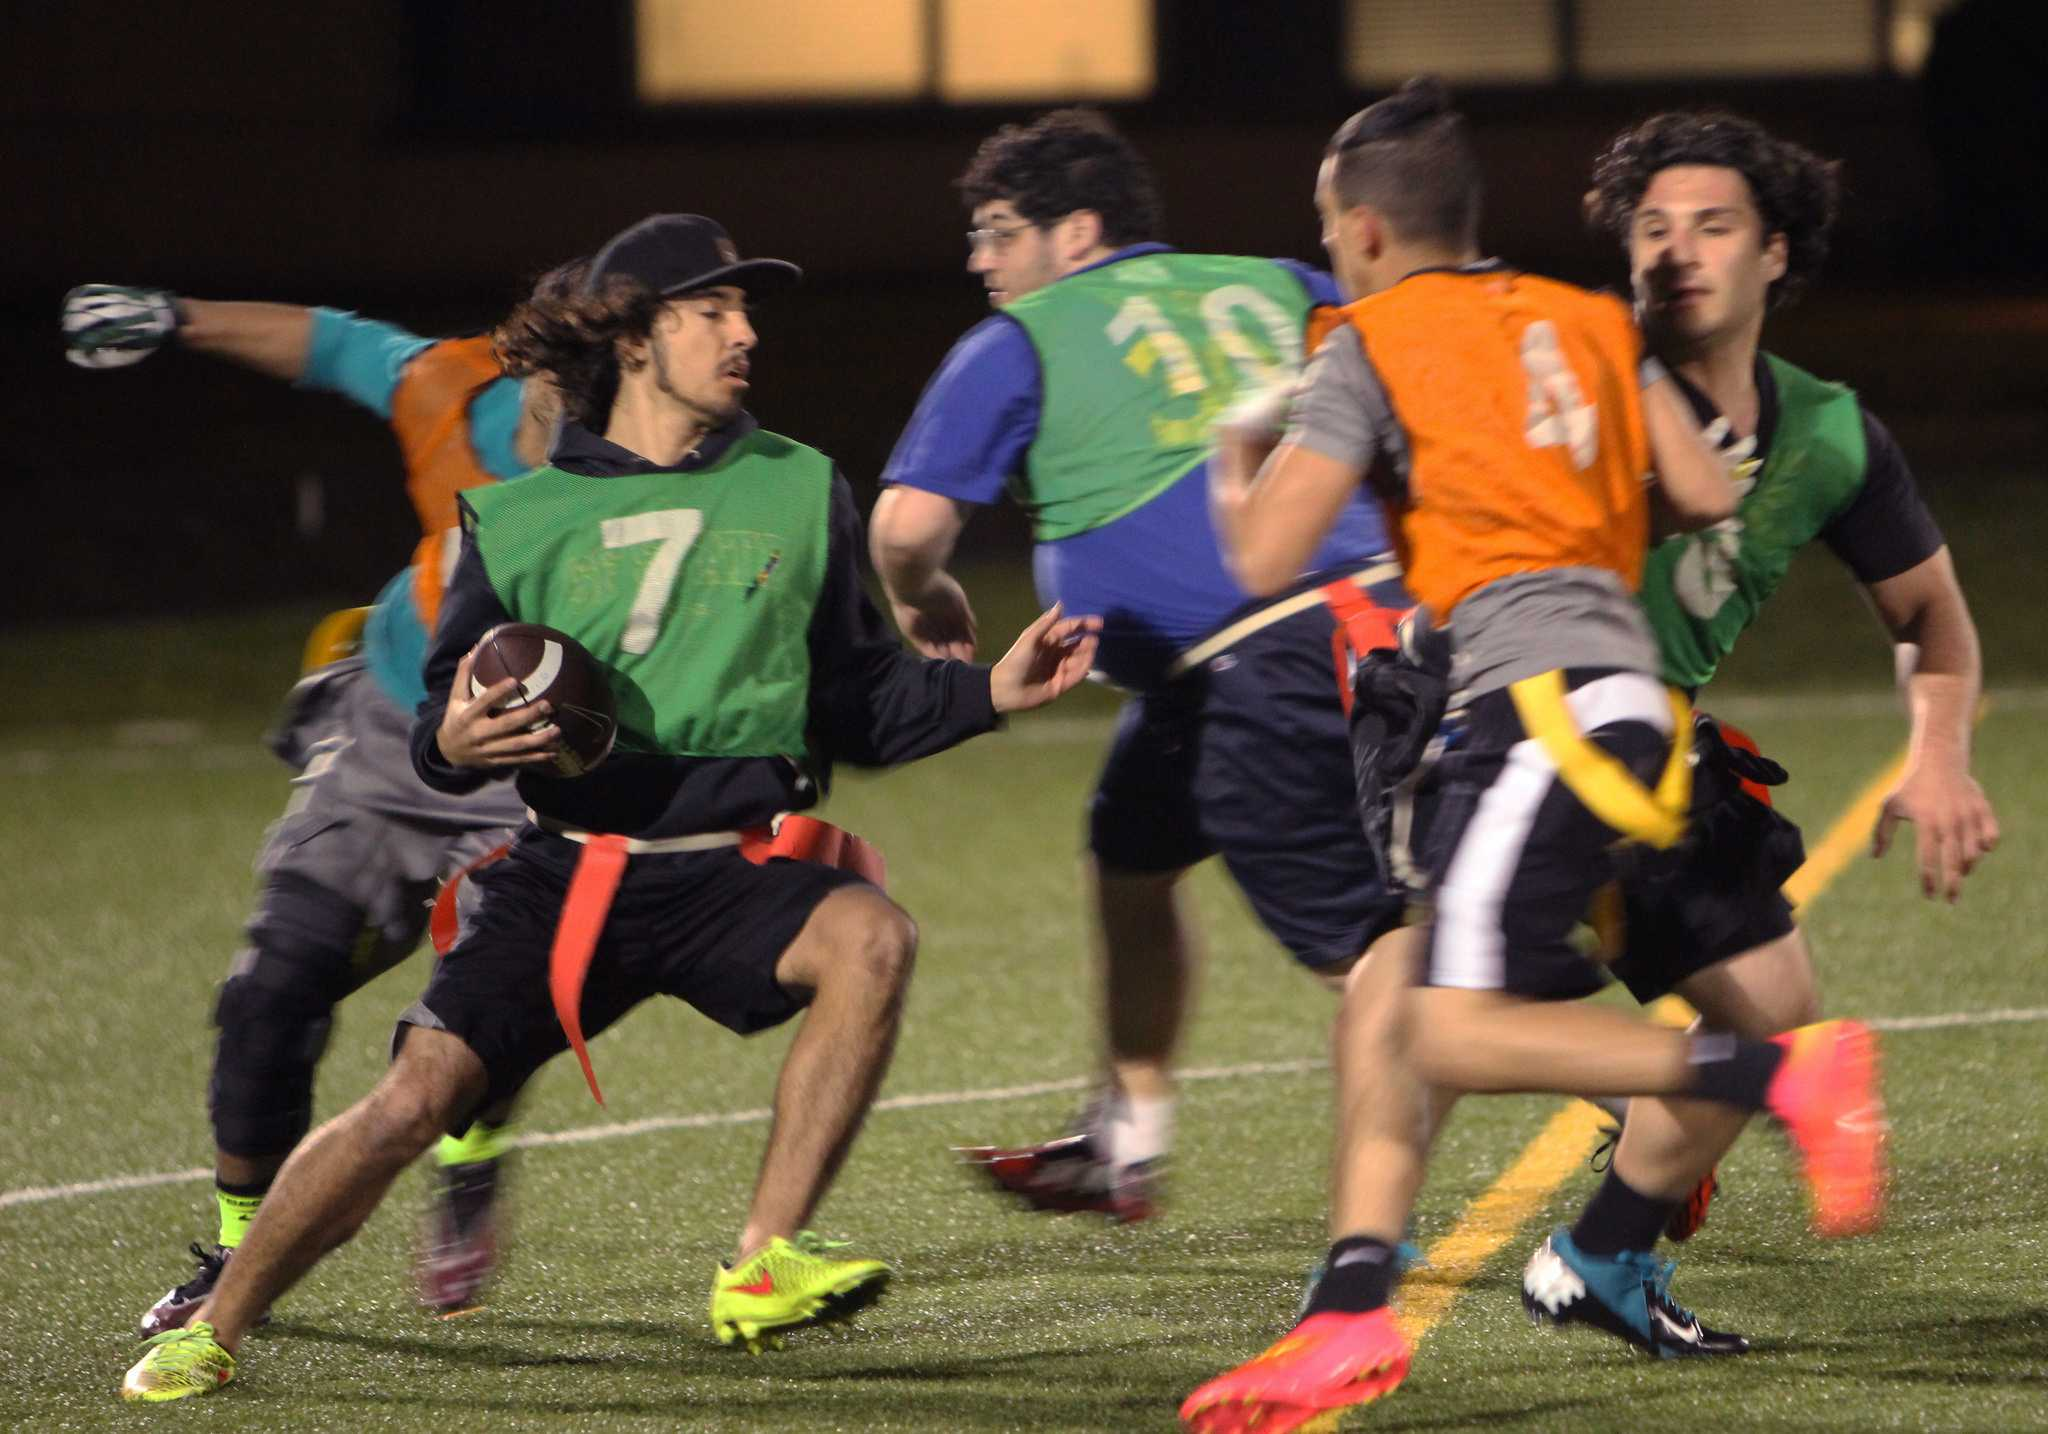 Koby Barela # 7 runs with the ball as a few players block a path for him during SF State's intramural flag football game Monday, April 6. (Angelica Williams / Xpress)